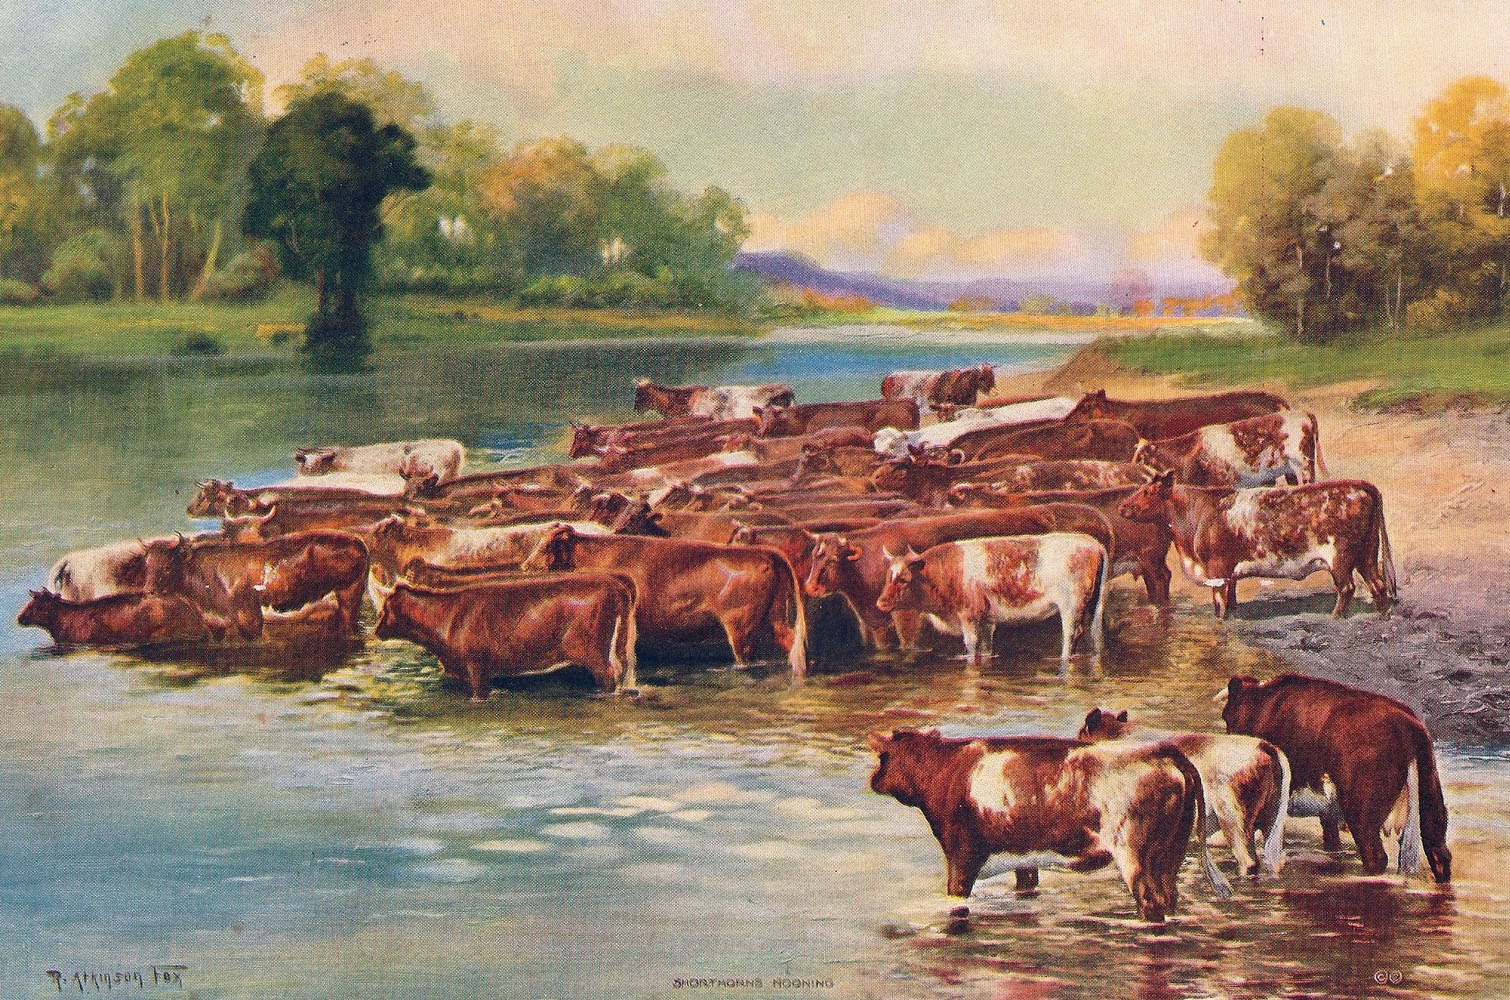 Cows/Cattle